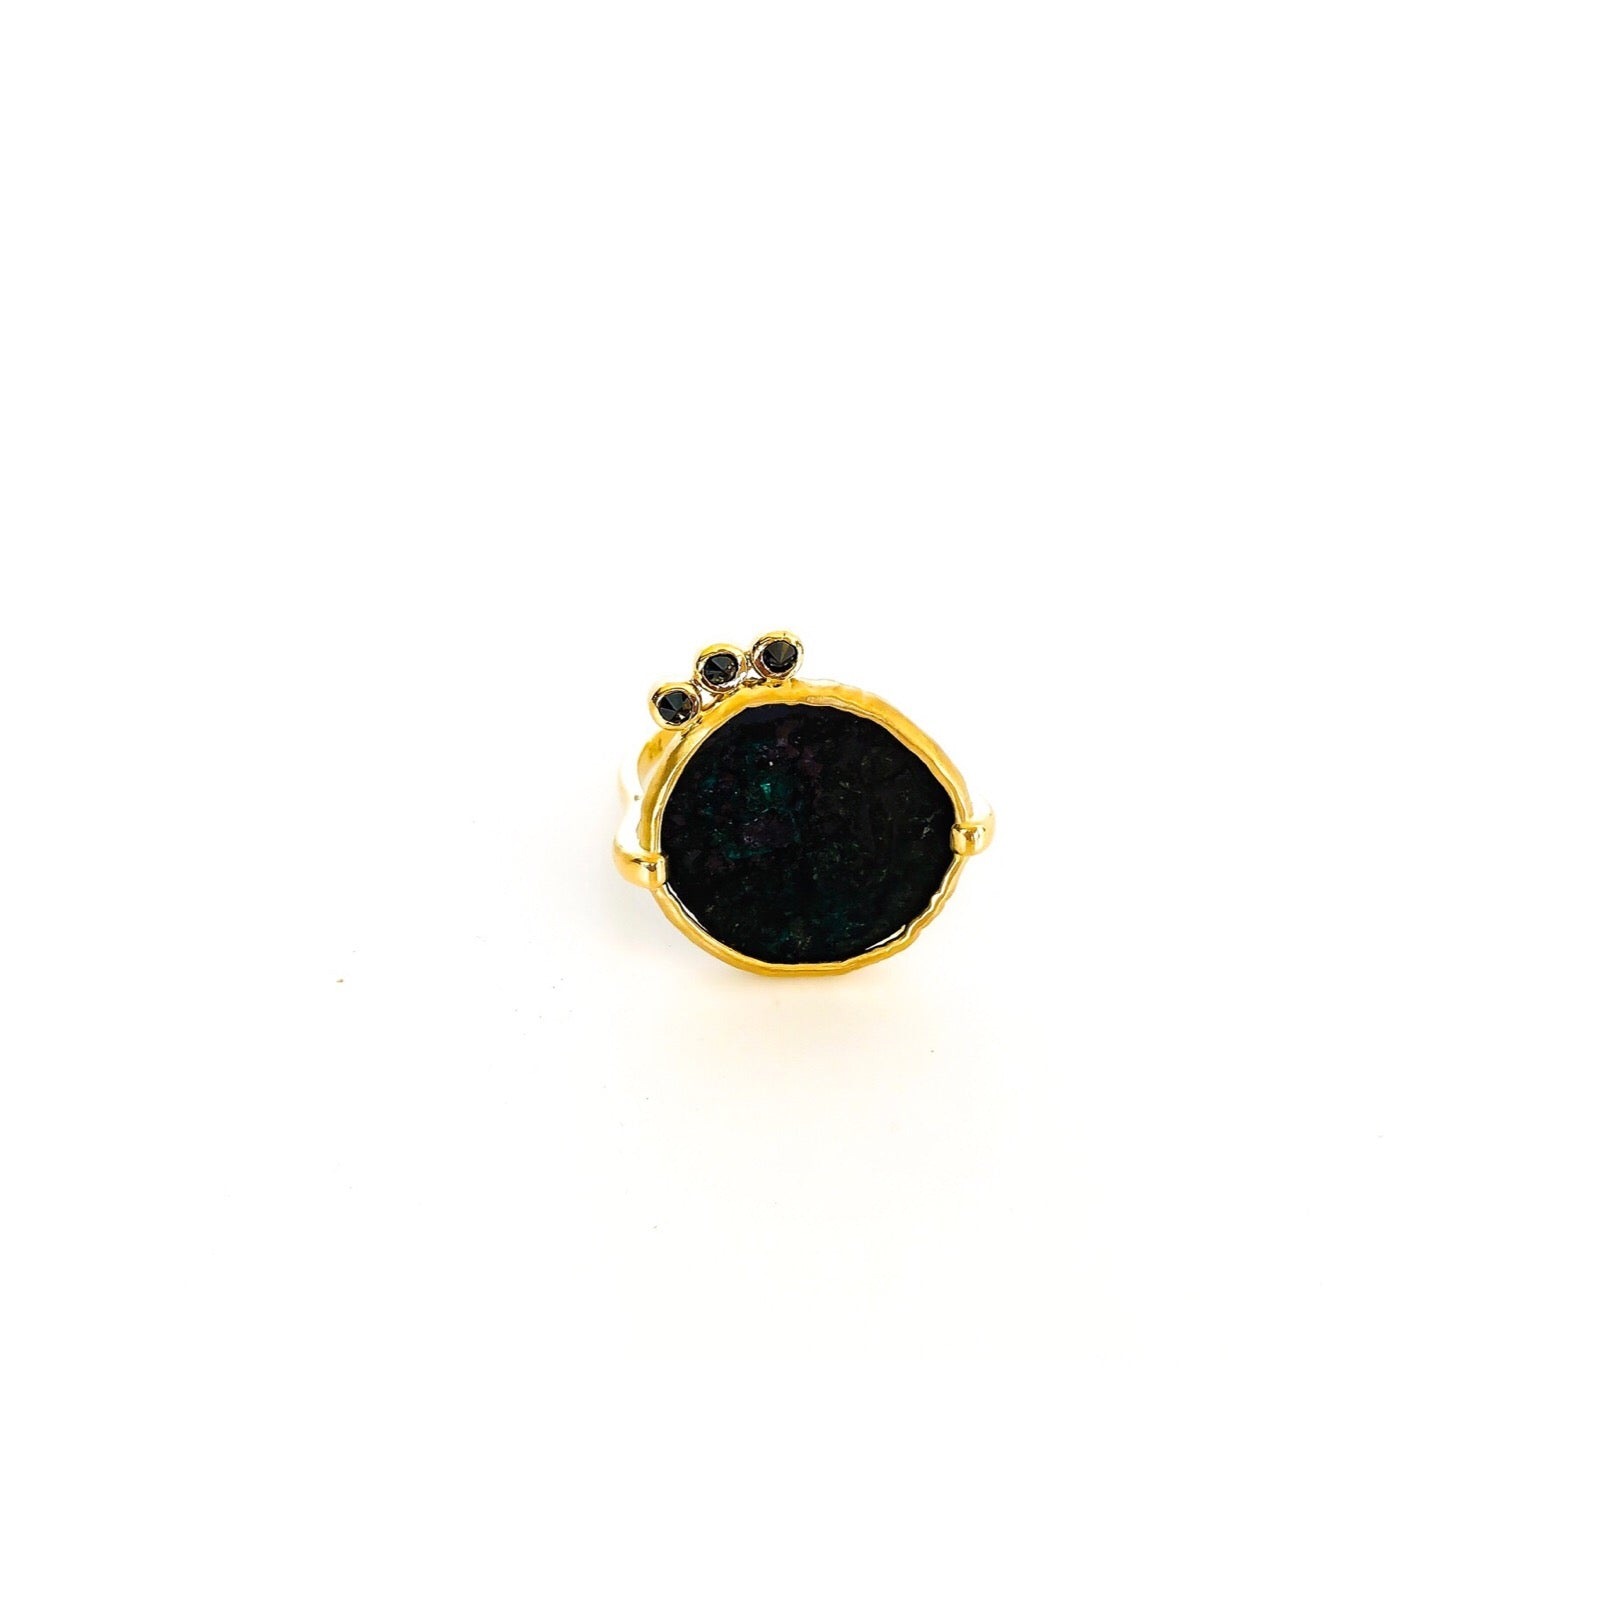 coin ring, black coin ring, spanish coin, diamond ring, stacking ring, rings, gold jewellery, gold jewelry